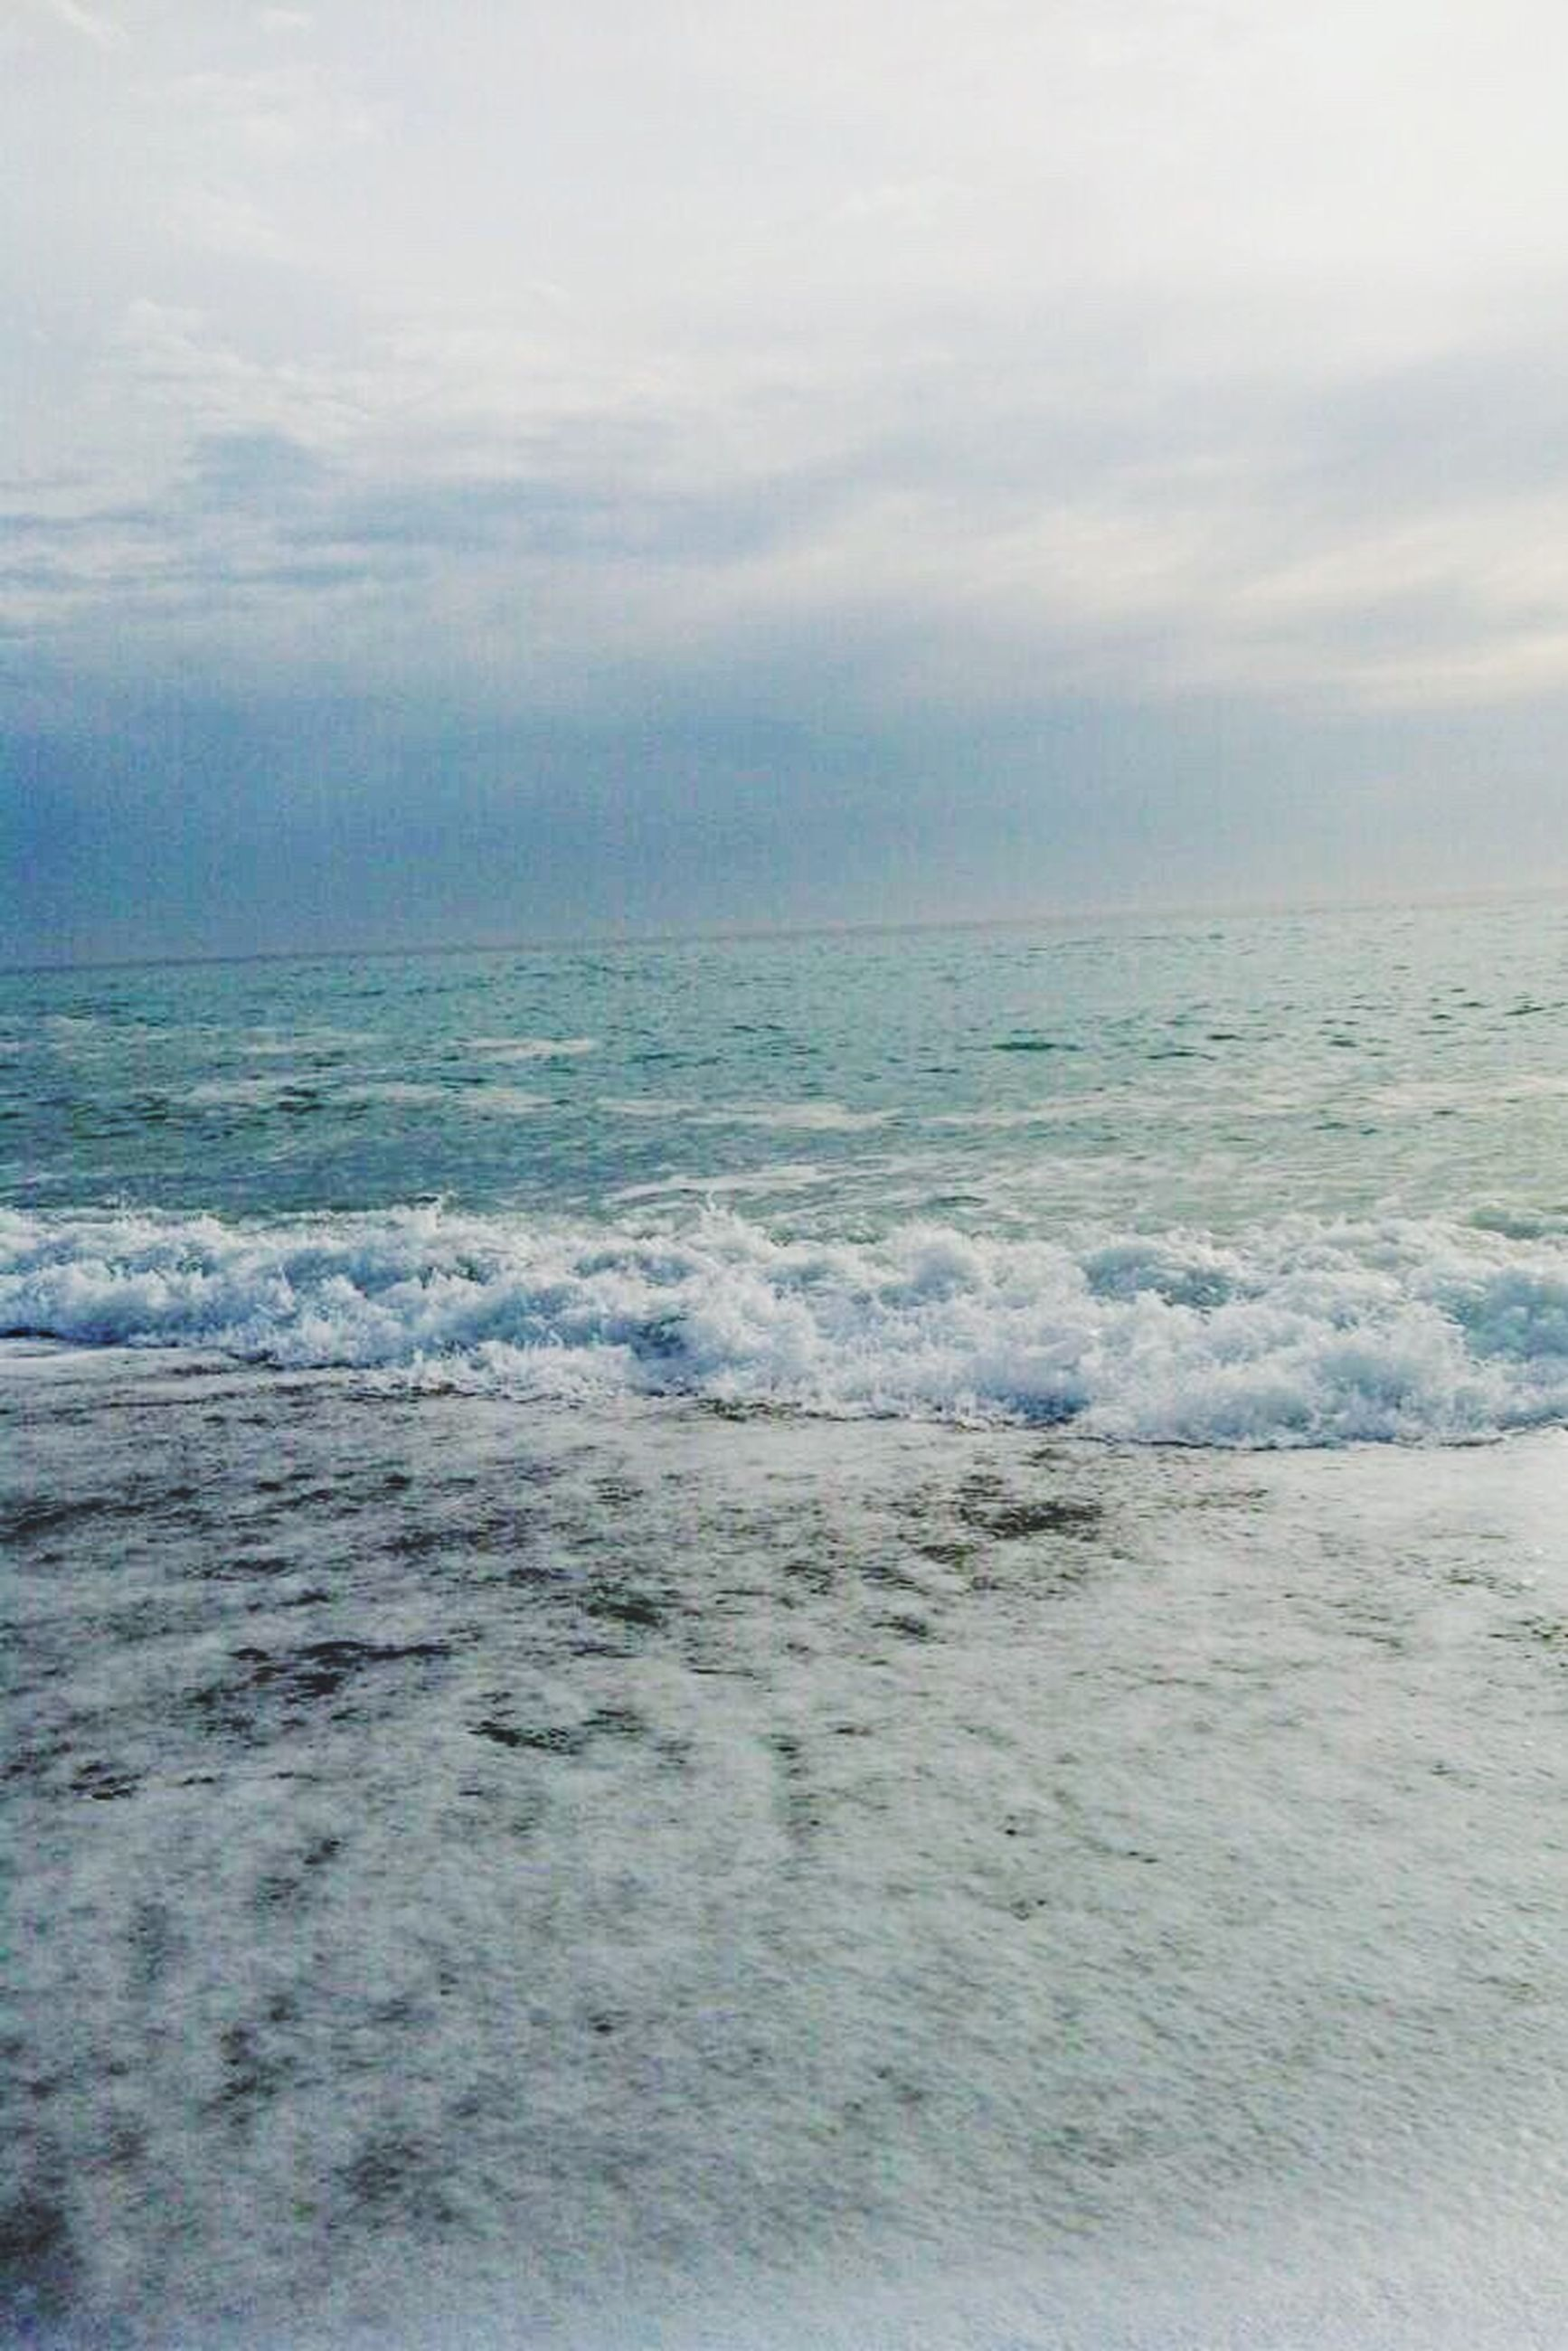 sea, sky, horizon over water, water, scenics, tranquil scene, tranquility, beauty in nature, beach, cloud - sky, nature, weather, cloudy, shore, wave, idyllic, cloud, surf, remote, overcast